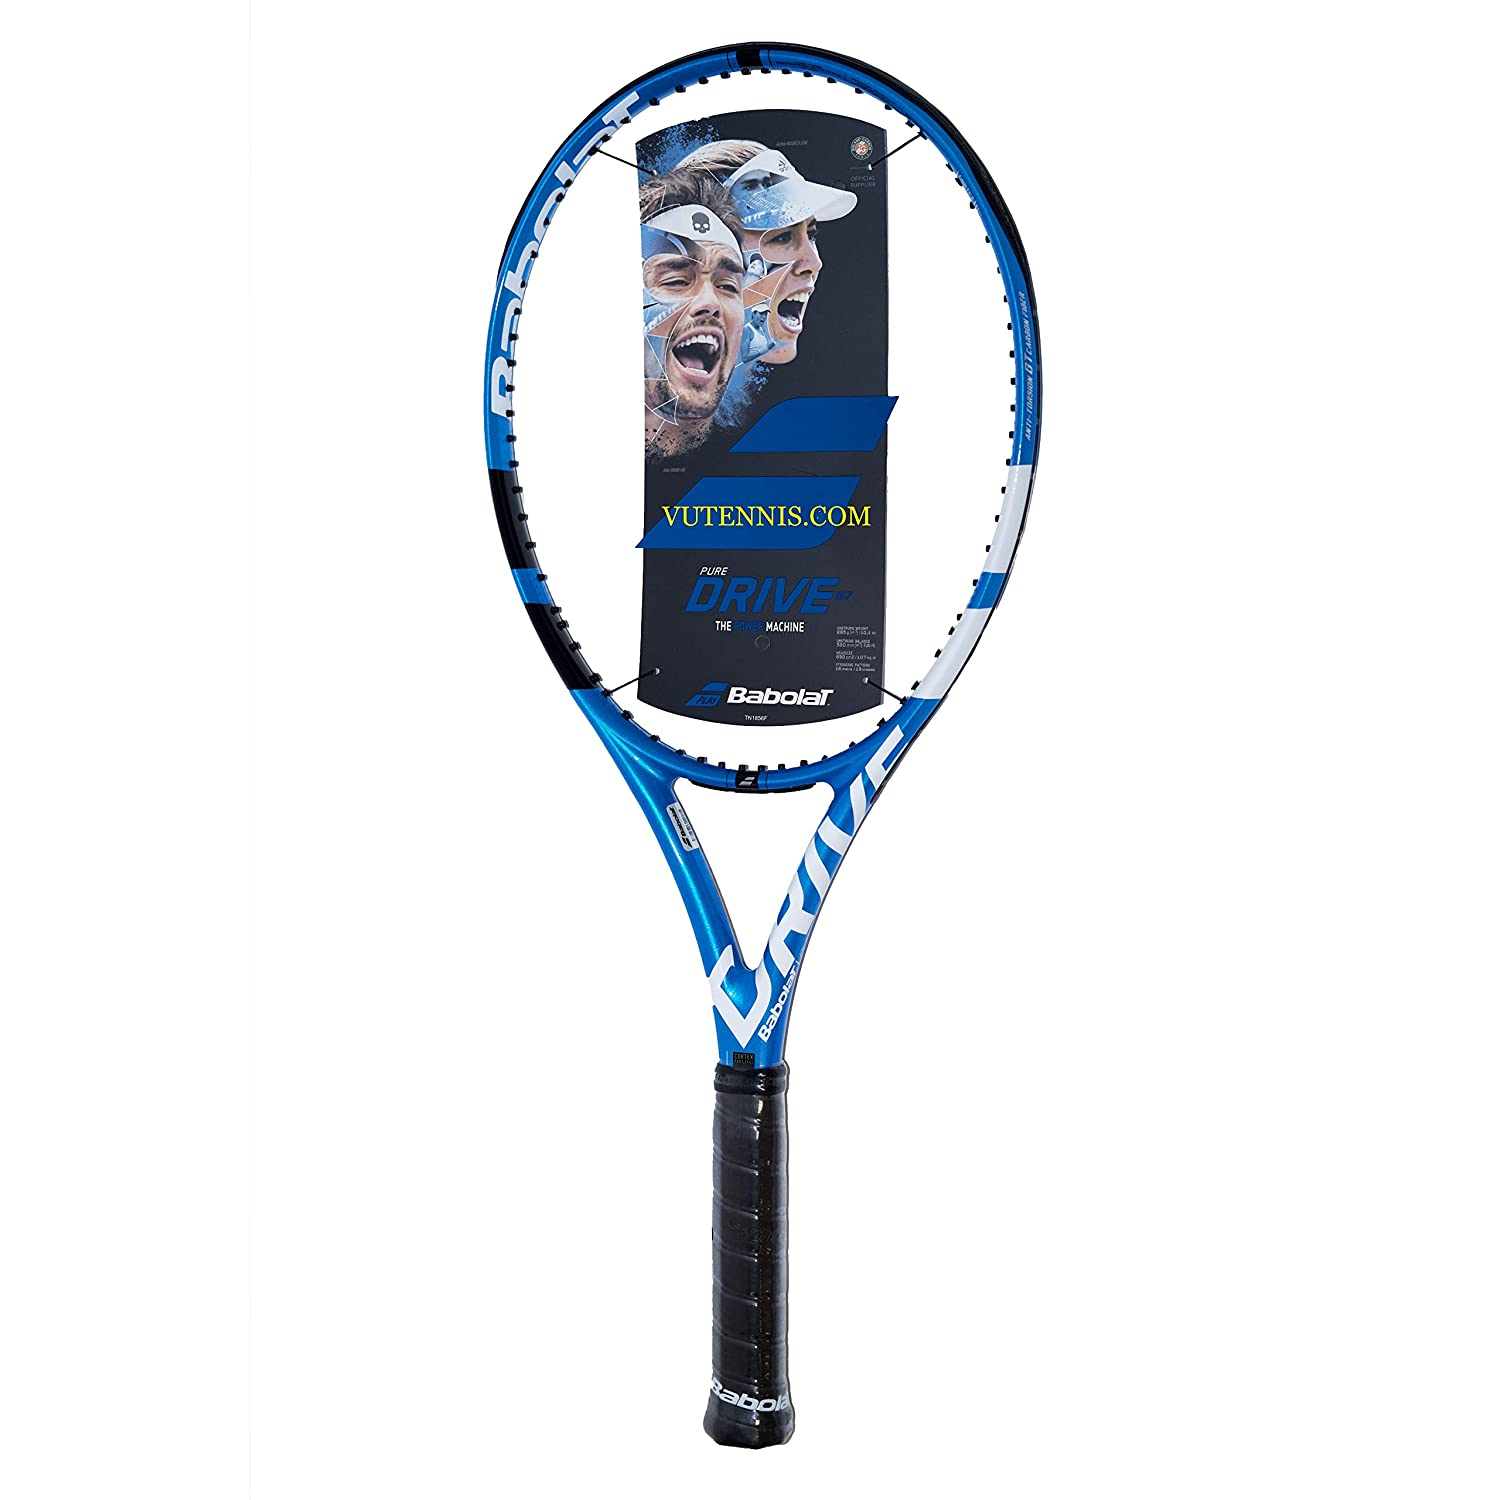 Amazon.com : [VUTENNISCOM] Babolat Pure Drive 107 Tennis Racquet - Customize String : Sports & Outdoors